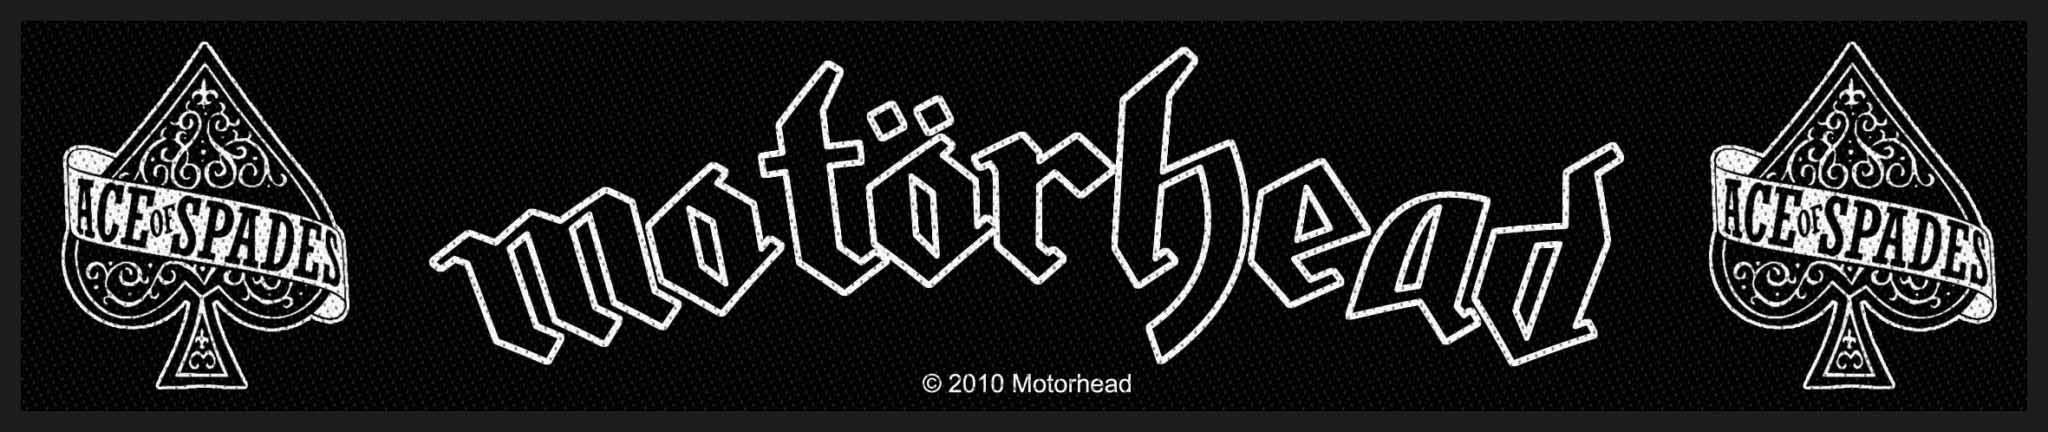 Motorhead- Ace Of Spades Woven Superstrip Patch (ep564) (Import)